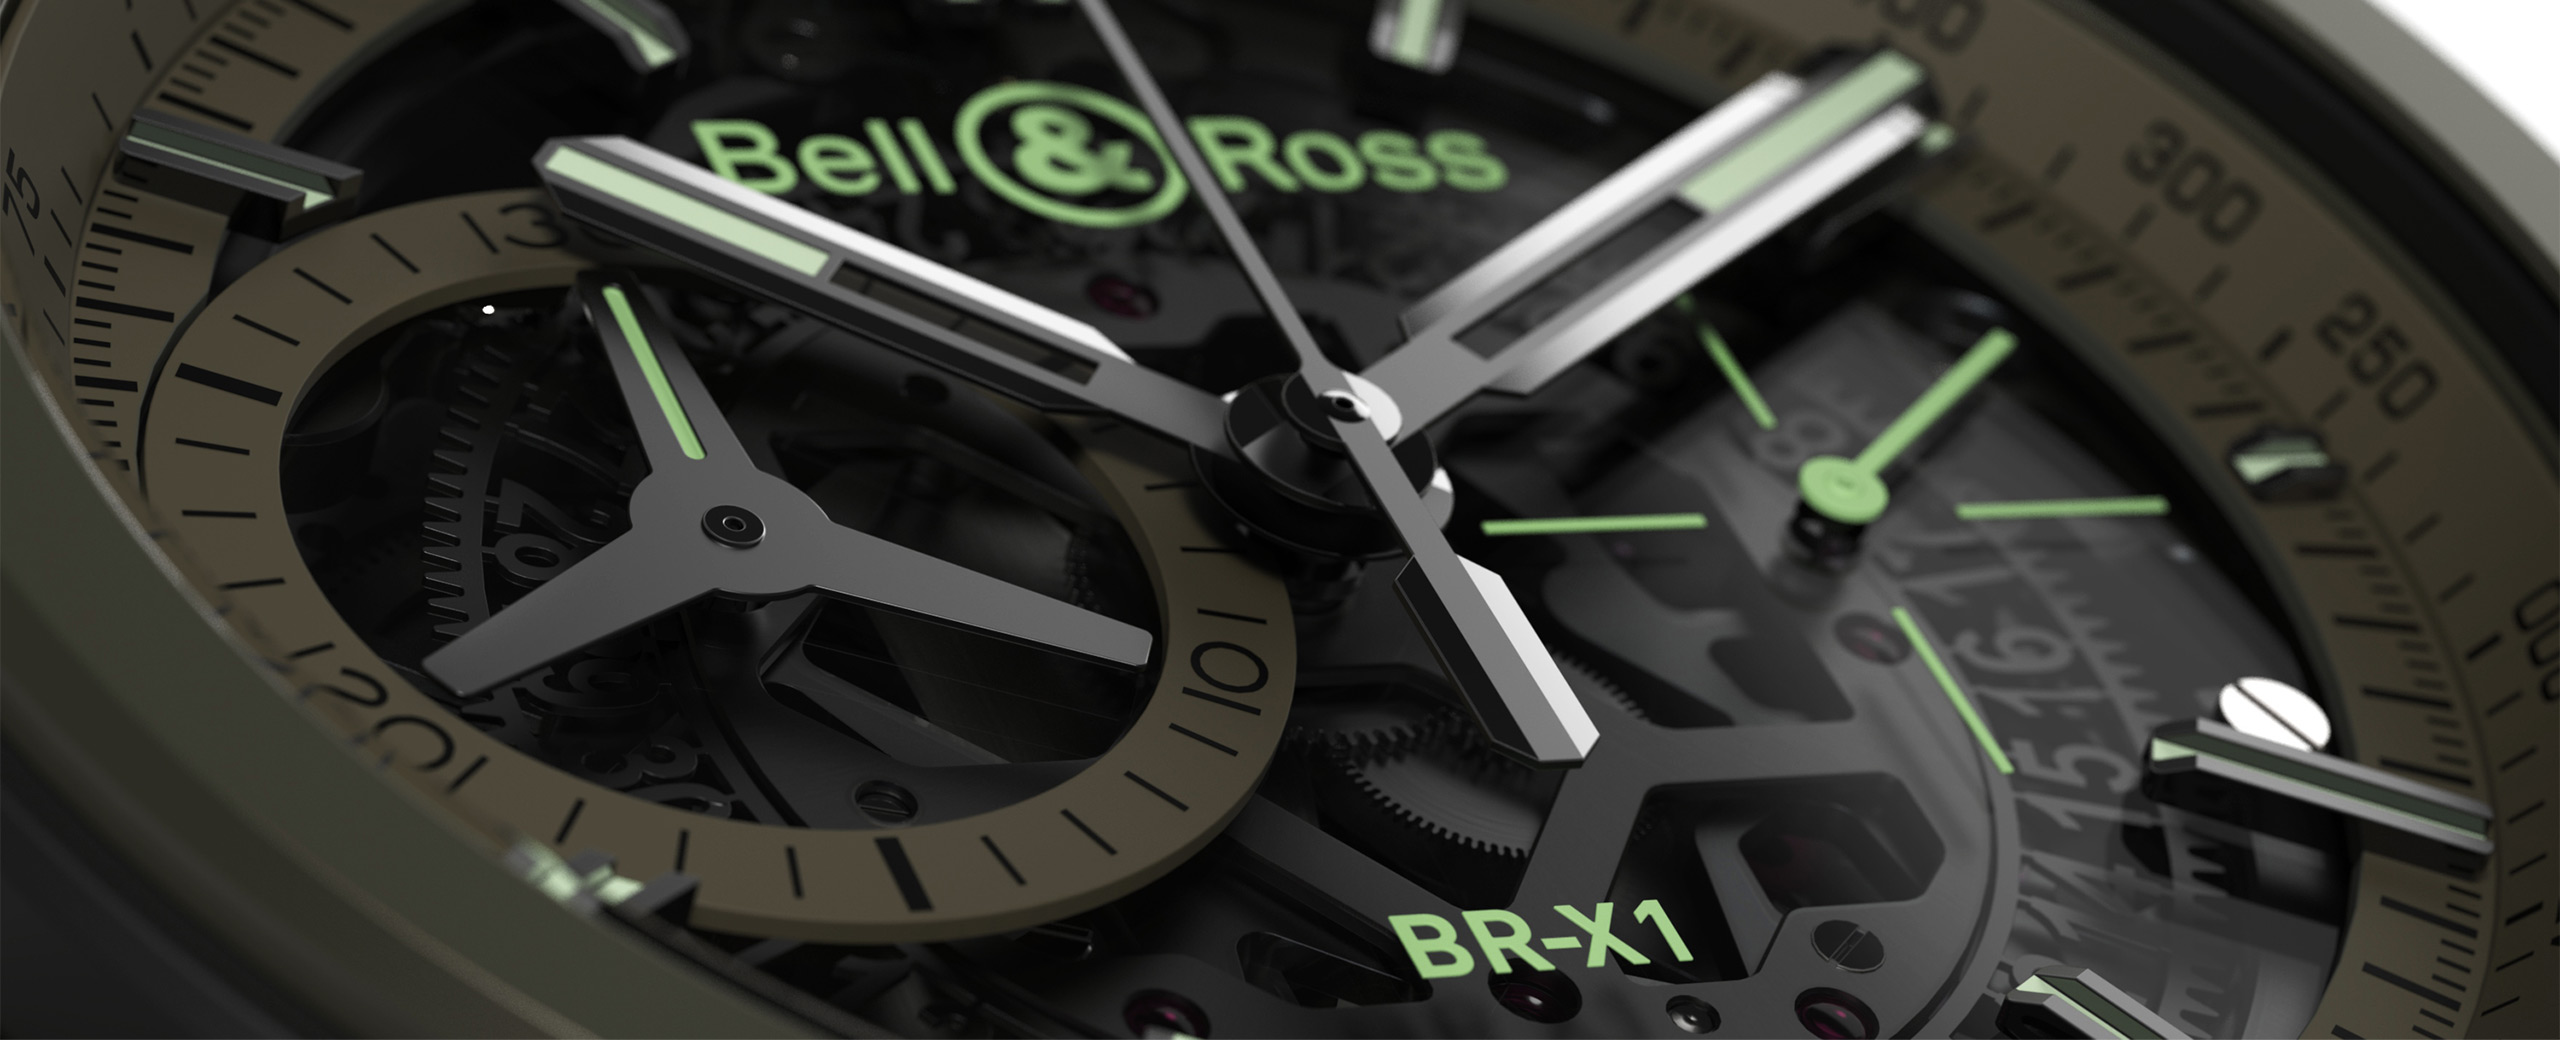 Bell & Ross BR-X1 Military close-up